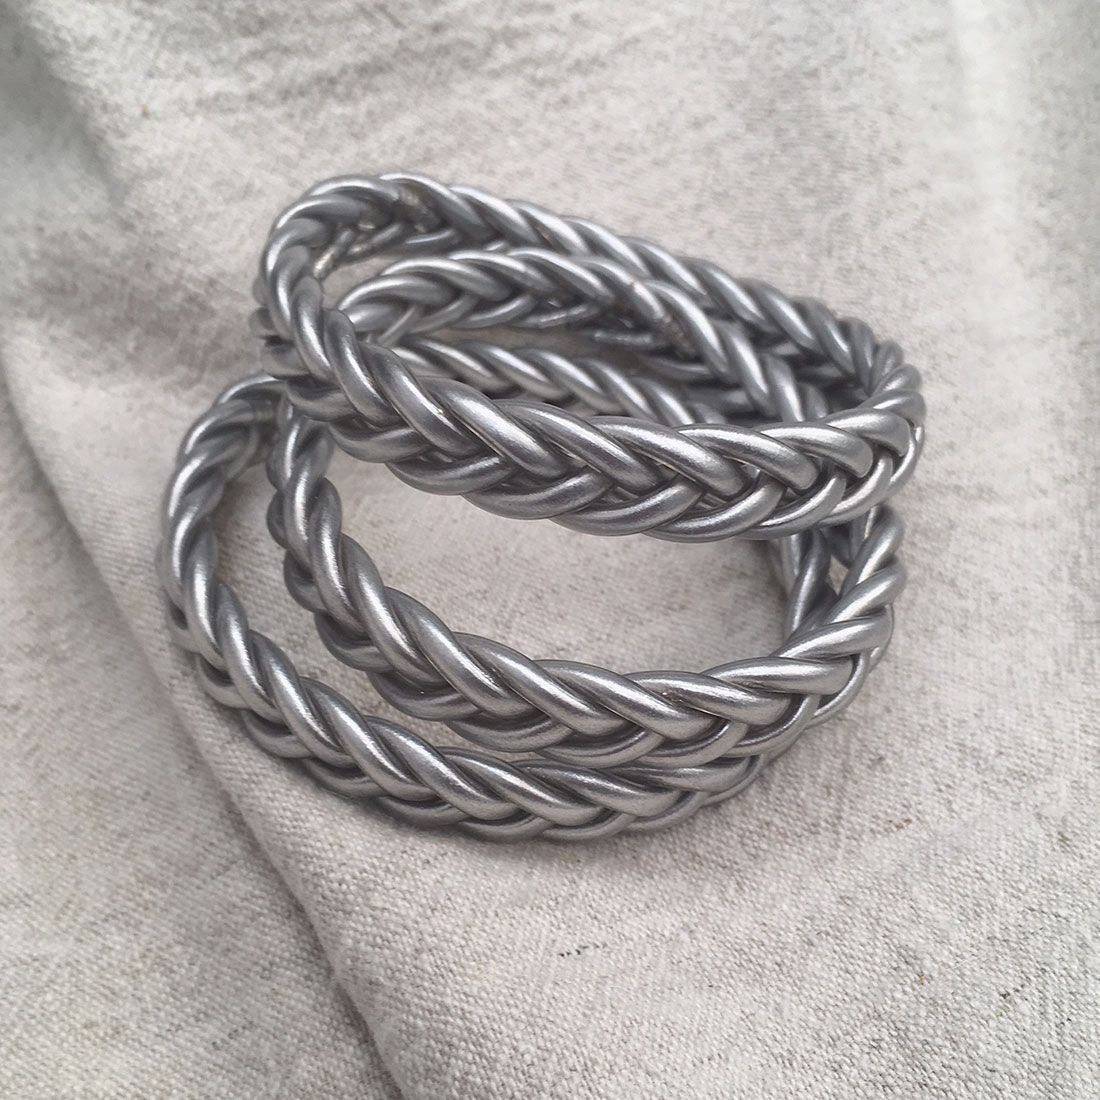 Bracelet bouddhiste Braid Argent